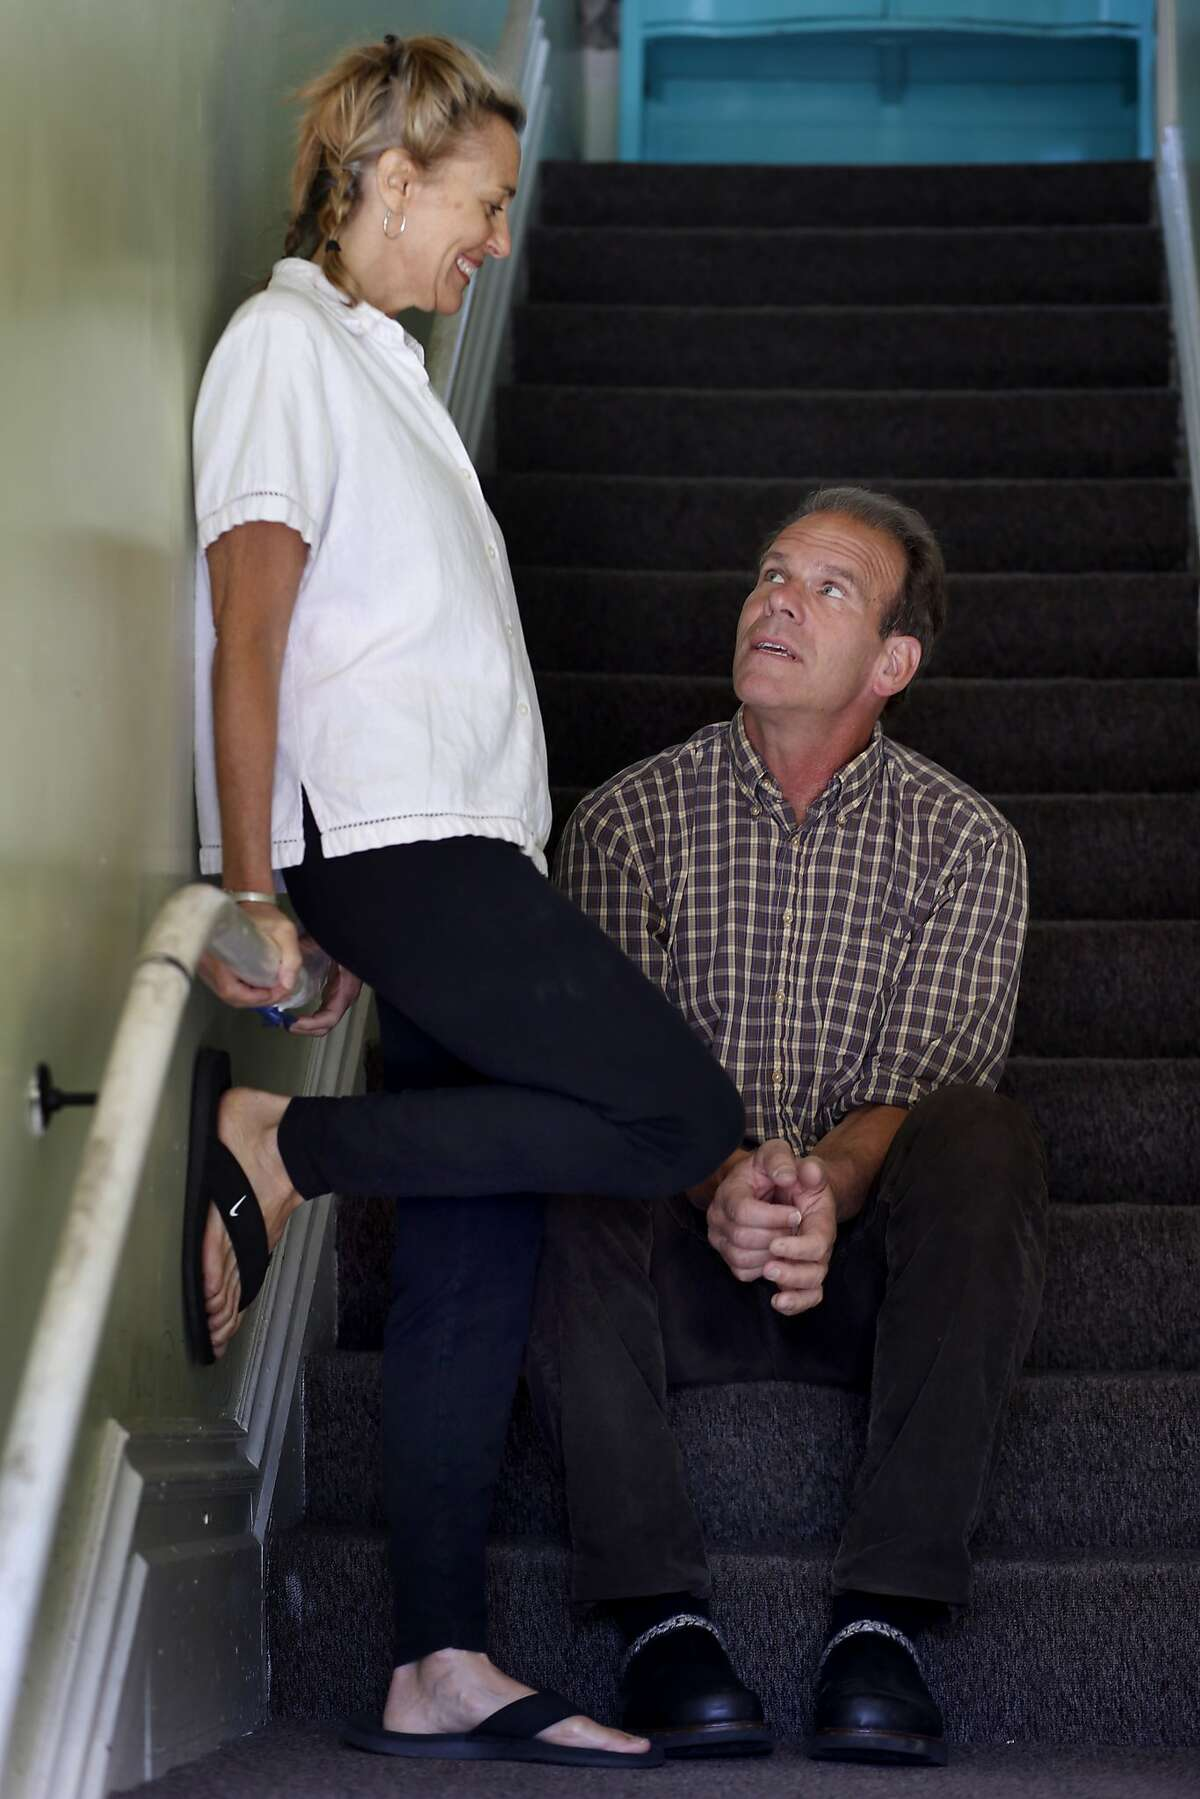 Lee (left) and Jake Sinclair sit in the stairwell of their Mission district home Monday June 9, 2014. Lee and Jake Sinclair, a San Francisco, Calif. husband and wife team, have developed a rape prevention program that is proving highly effective in parts of Kenya where sexual assault is rampant.